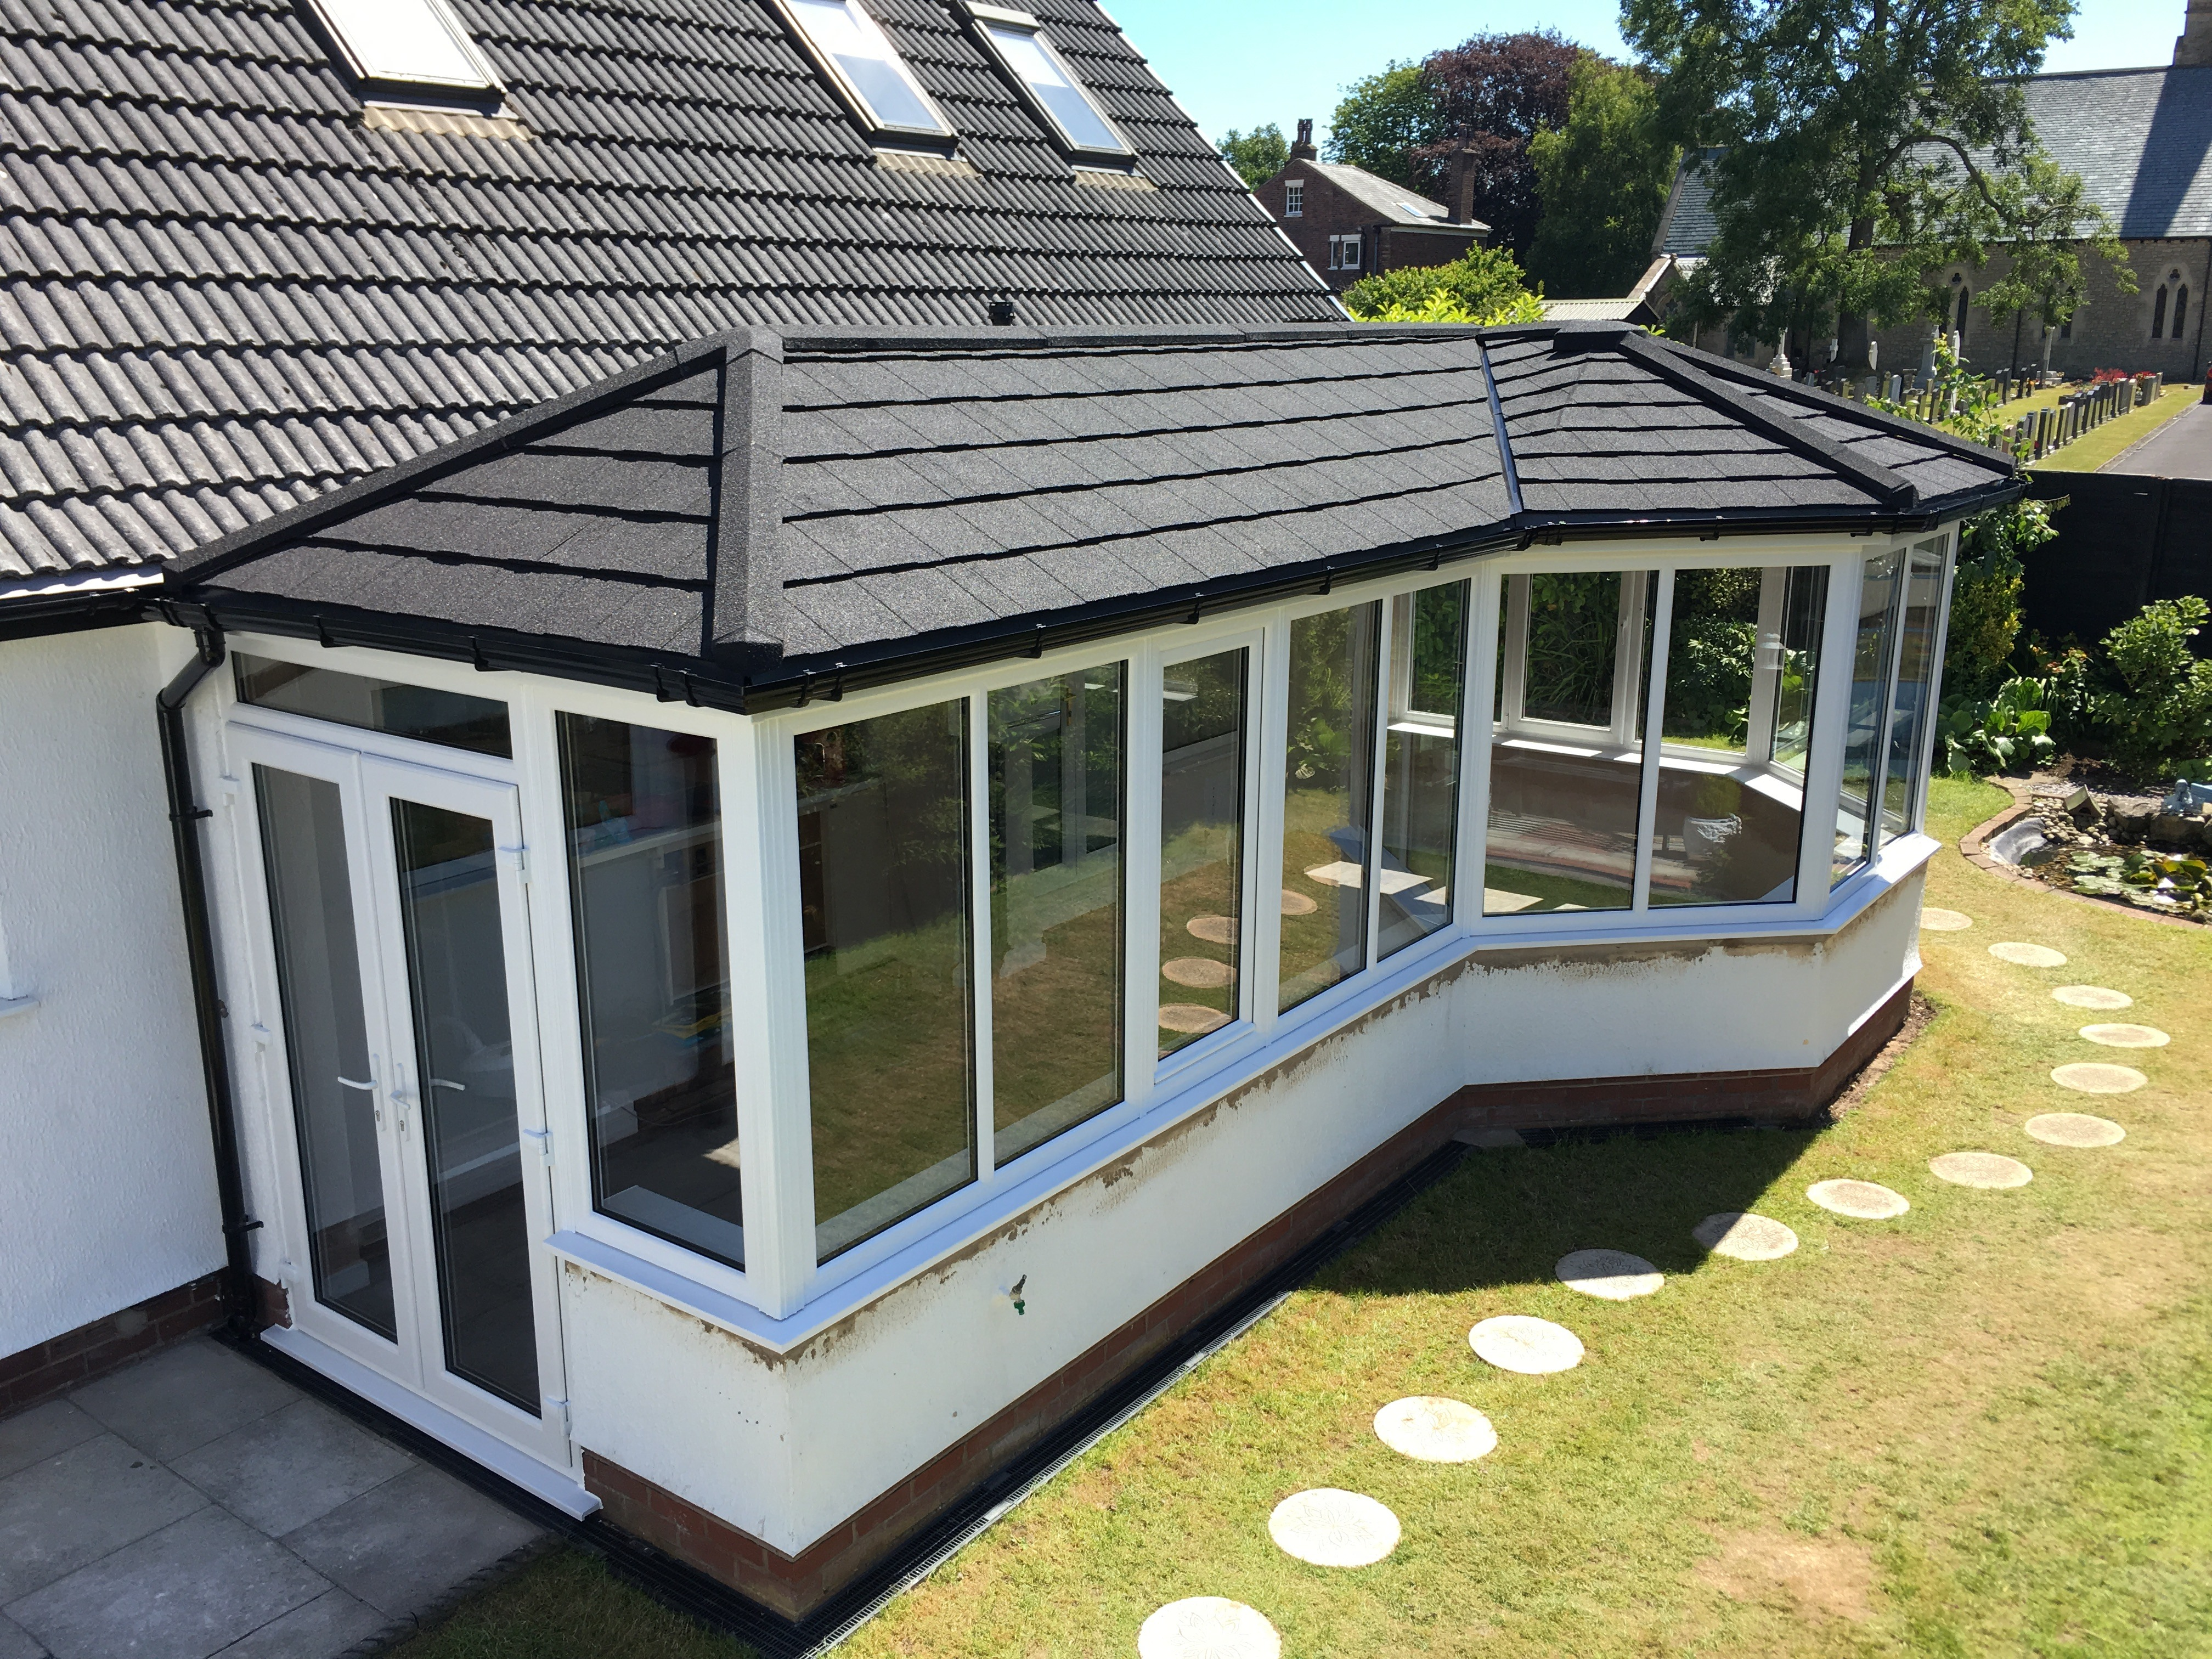 Lightweight Roofing Solutions Supalite Tiled Roof Systems